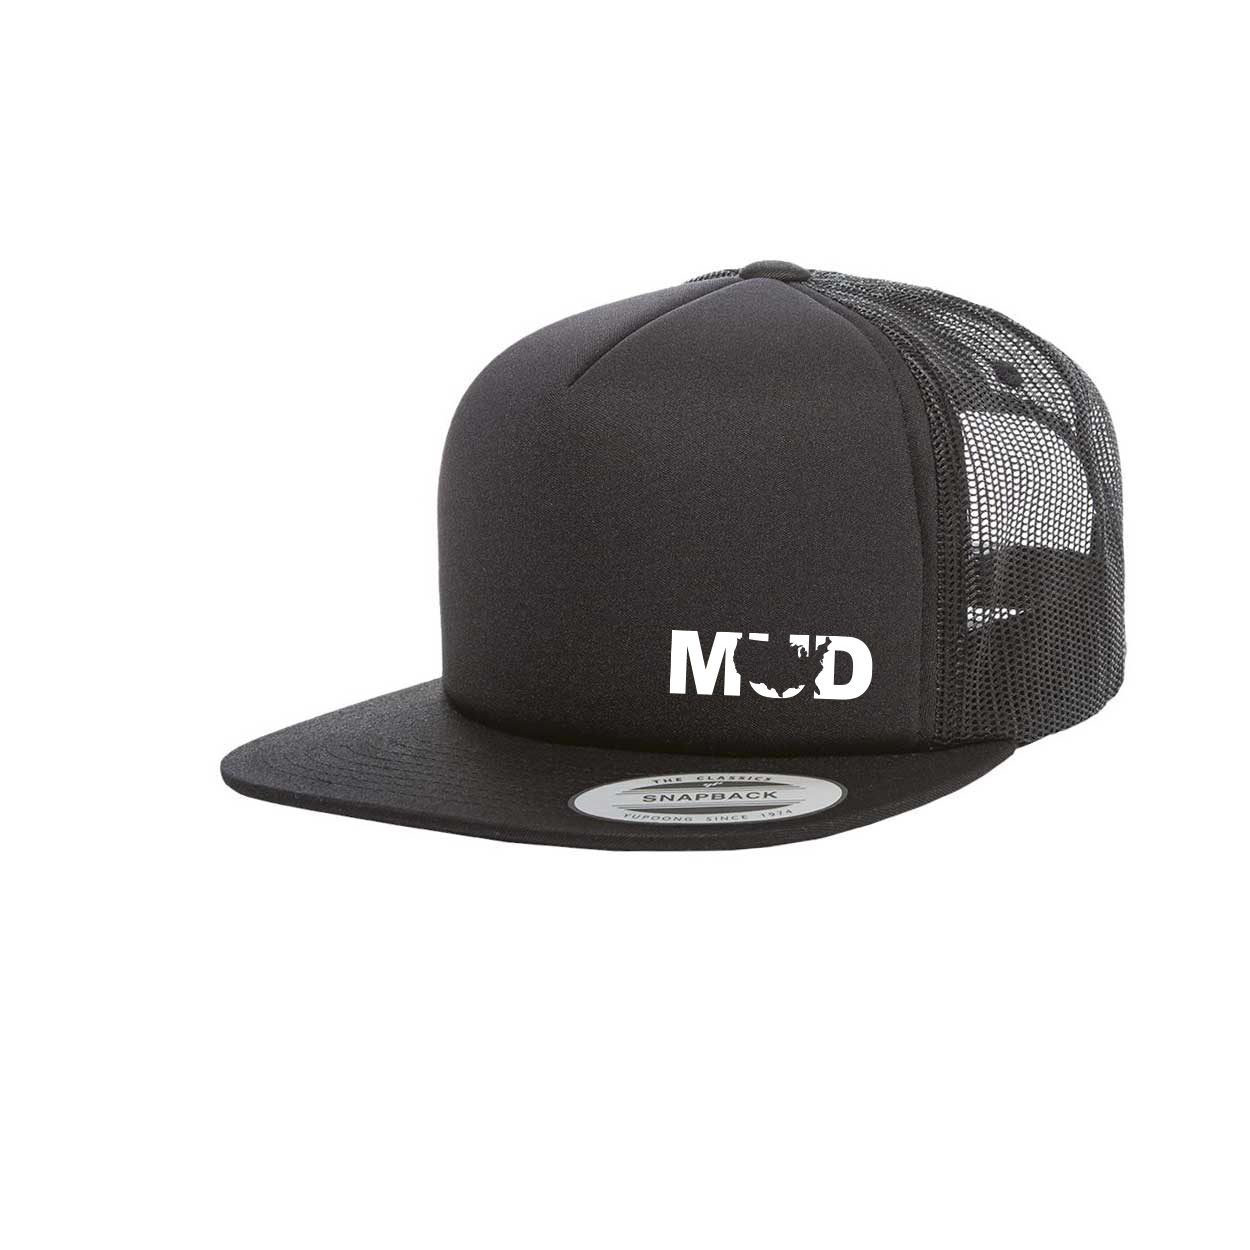 Mud United States Night Out Premium Foam Flat Brim Snapback Hat Black (White Logo)